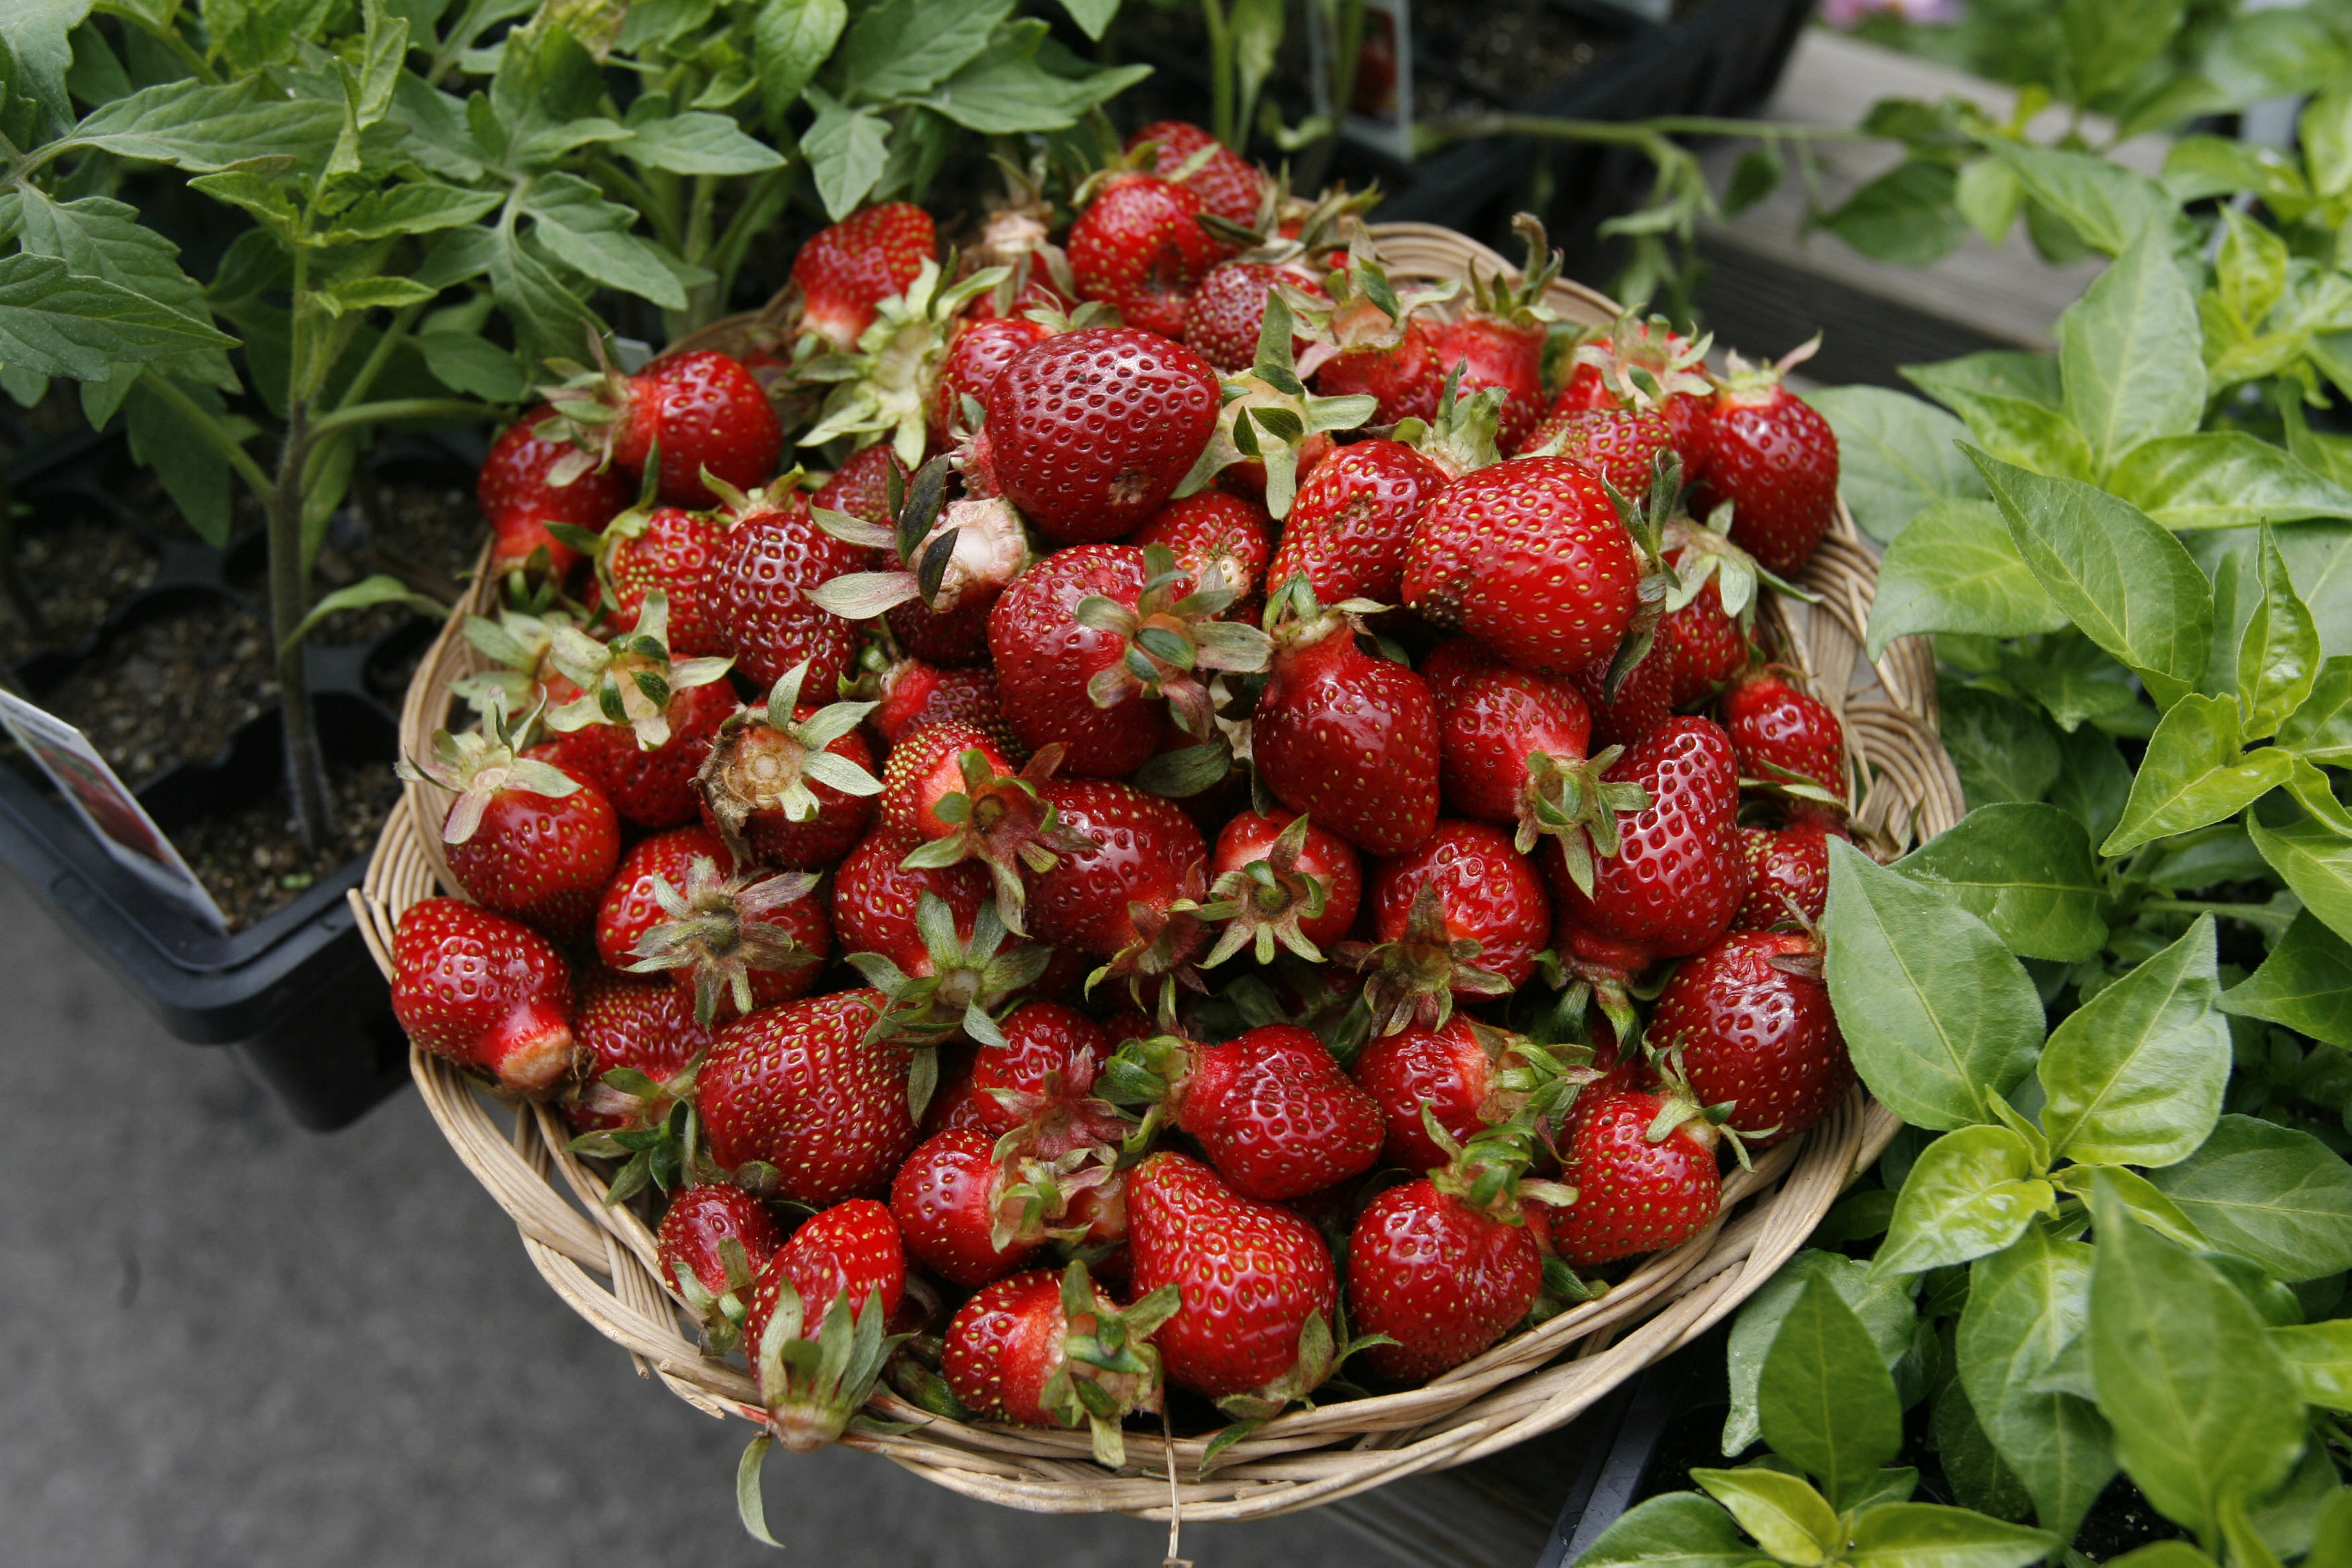 Locally grown berries are ripe for picking and using in a classic dessert like strawberry shortcake.